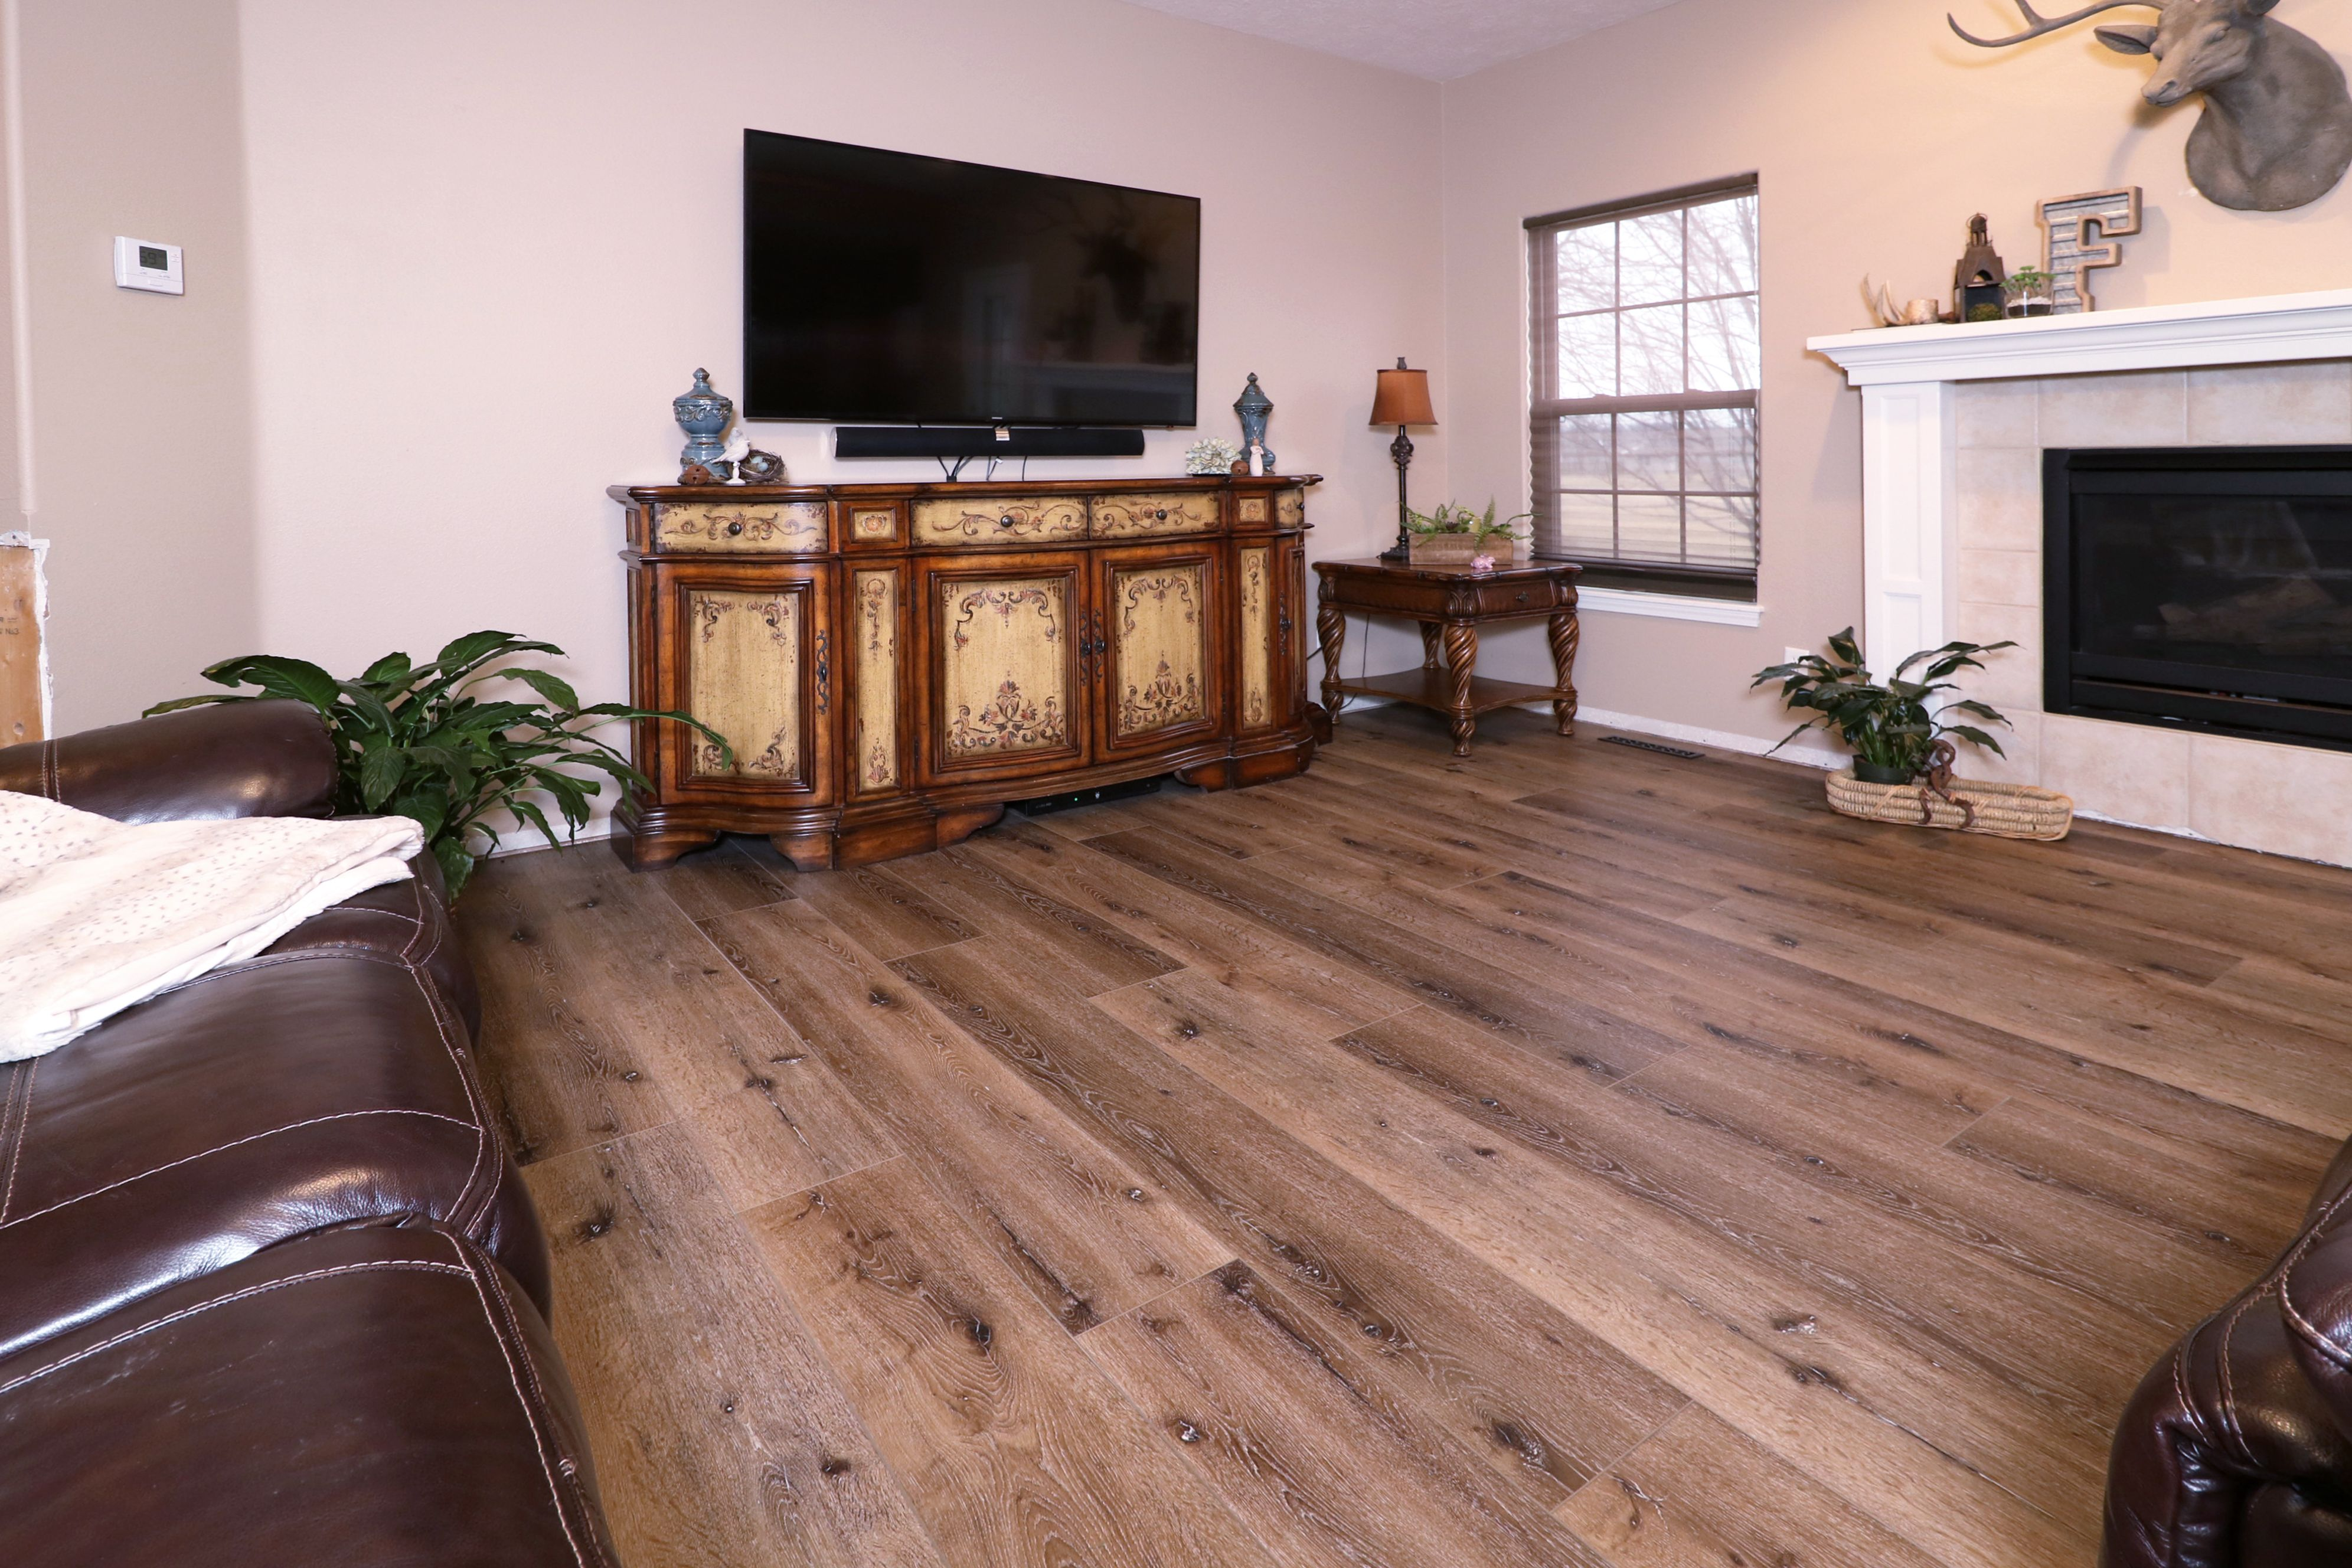 This Product Is Old English Luxury Vinyl Plank That Can Be Found At Mouery S Flooring In Springfiel Luxury Vinyl Plank Vinyl Plank Luxury Vinyl Plank Flooring